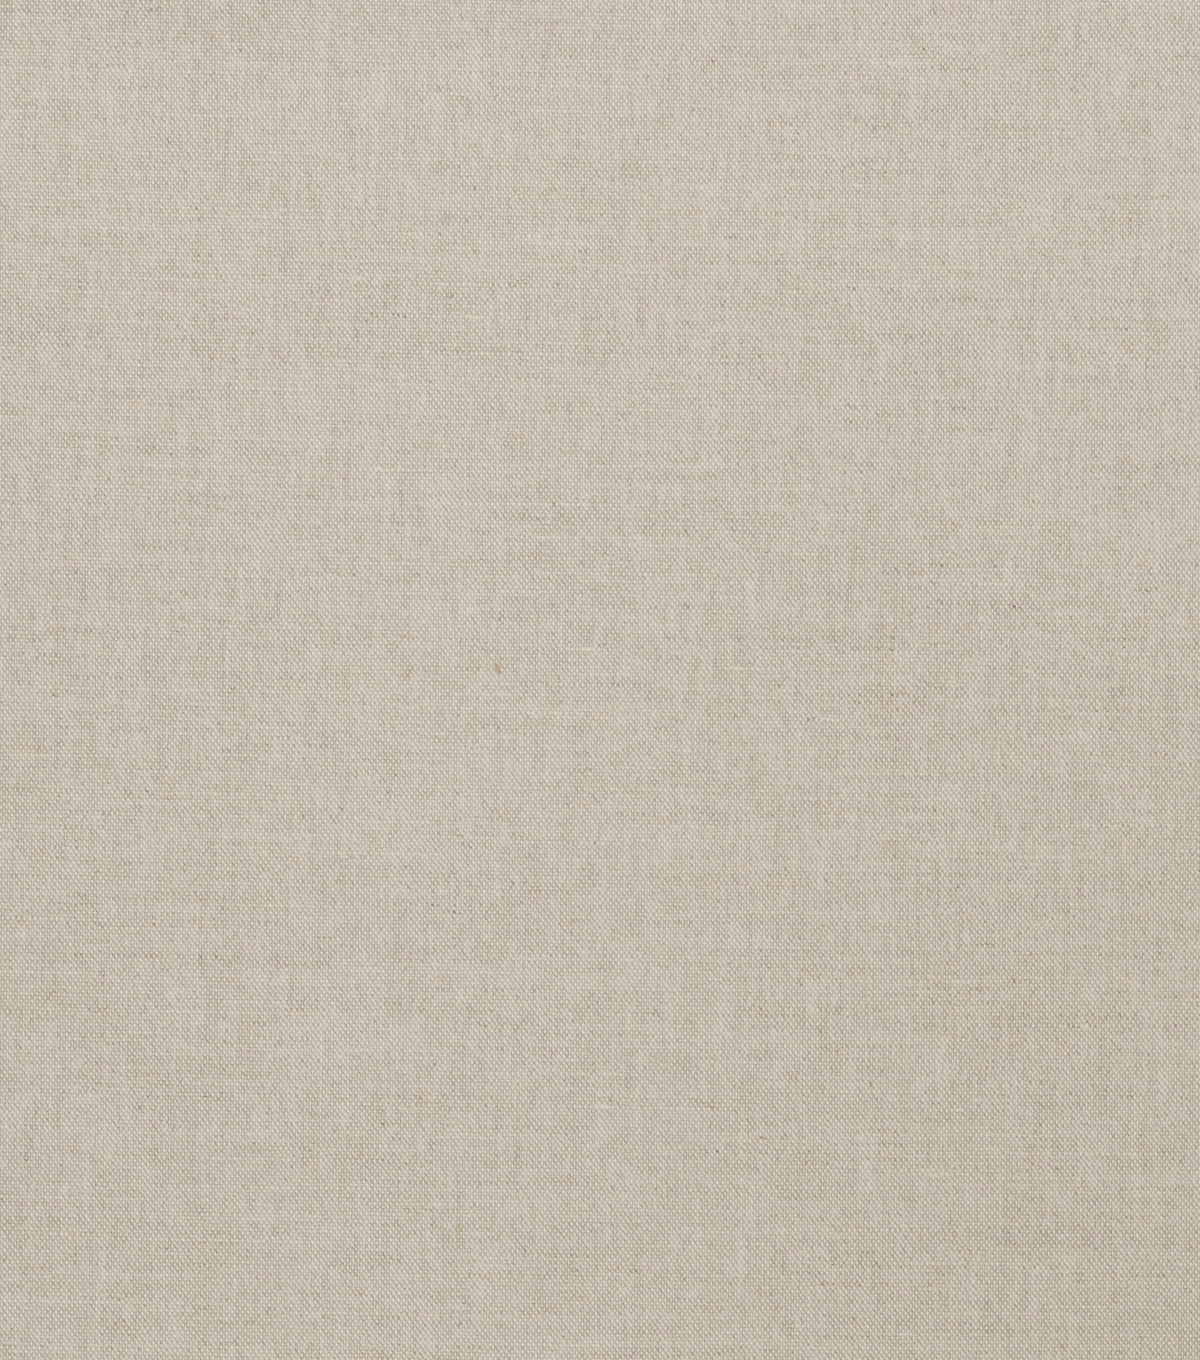 Sonoma Linen Cotton Natural Swatch